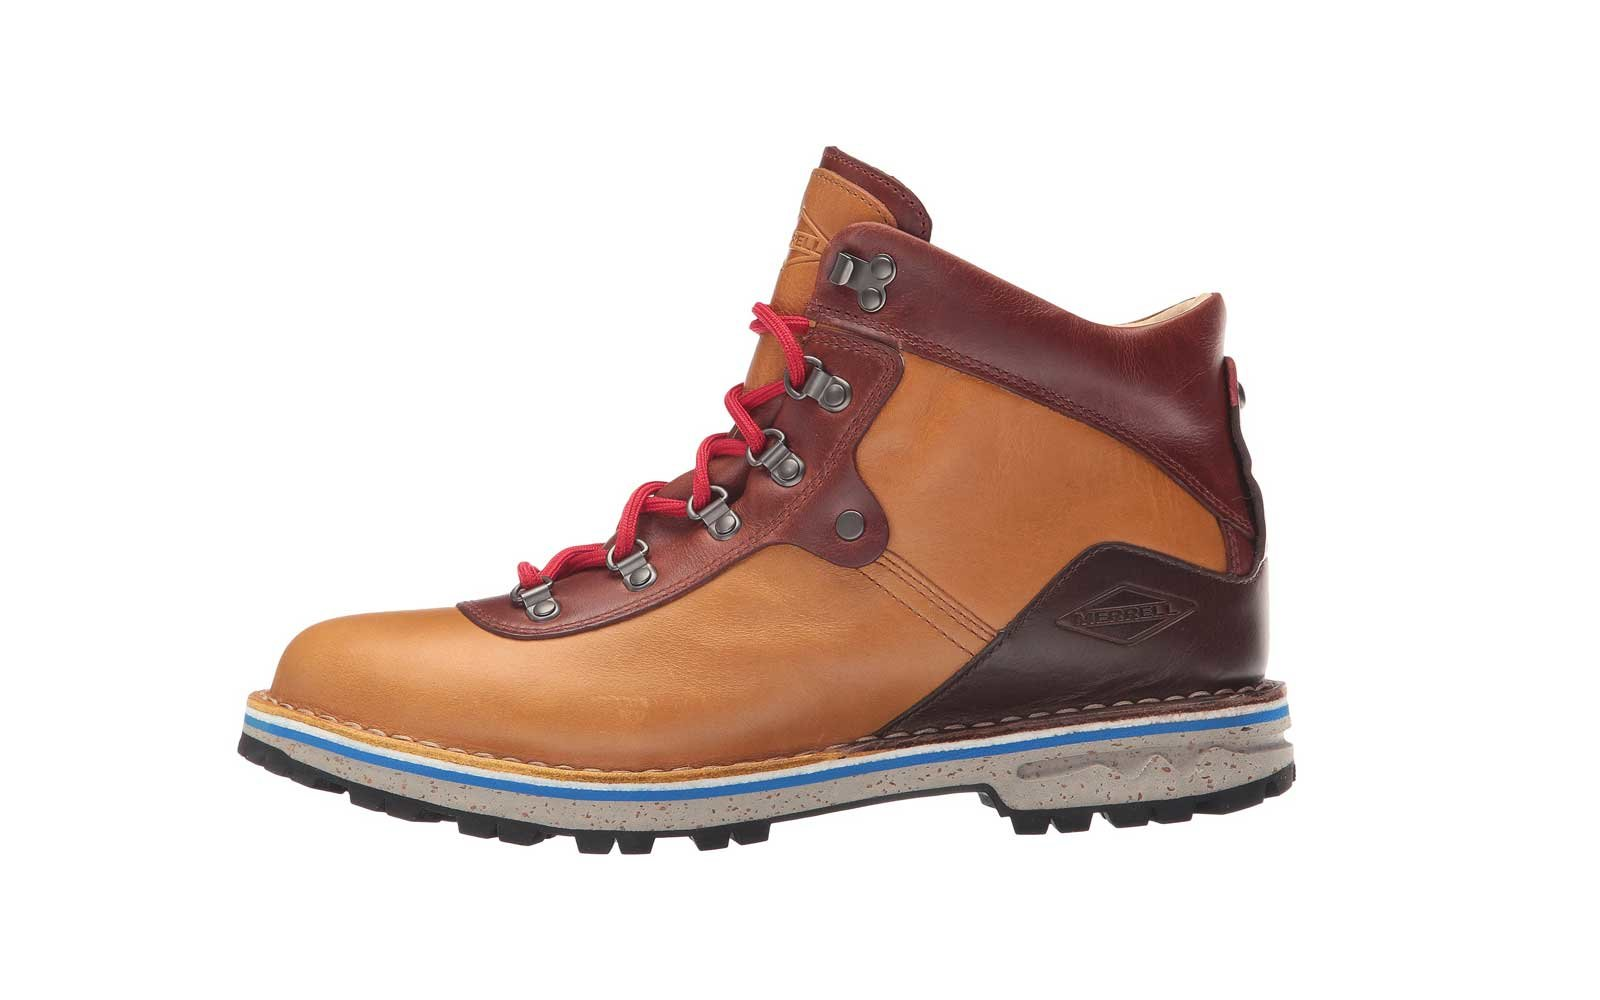 b17a5c6263f The Most Comfortable Walking Boots